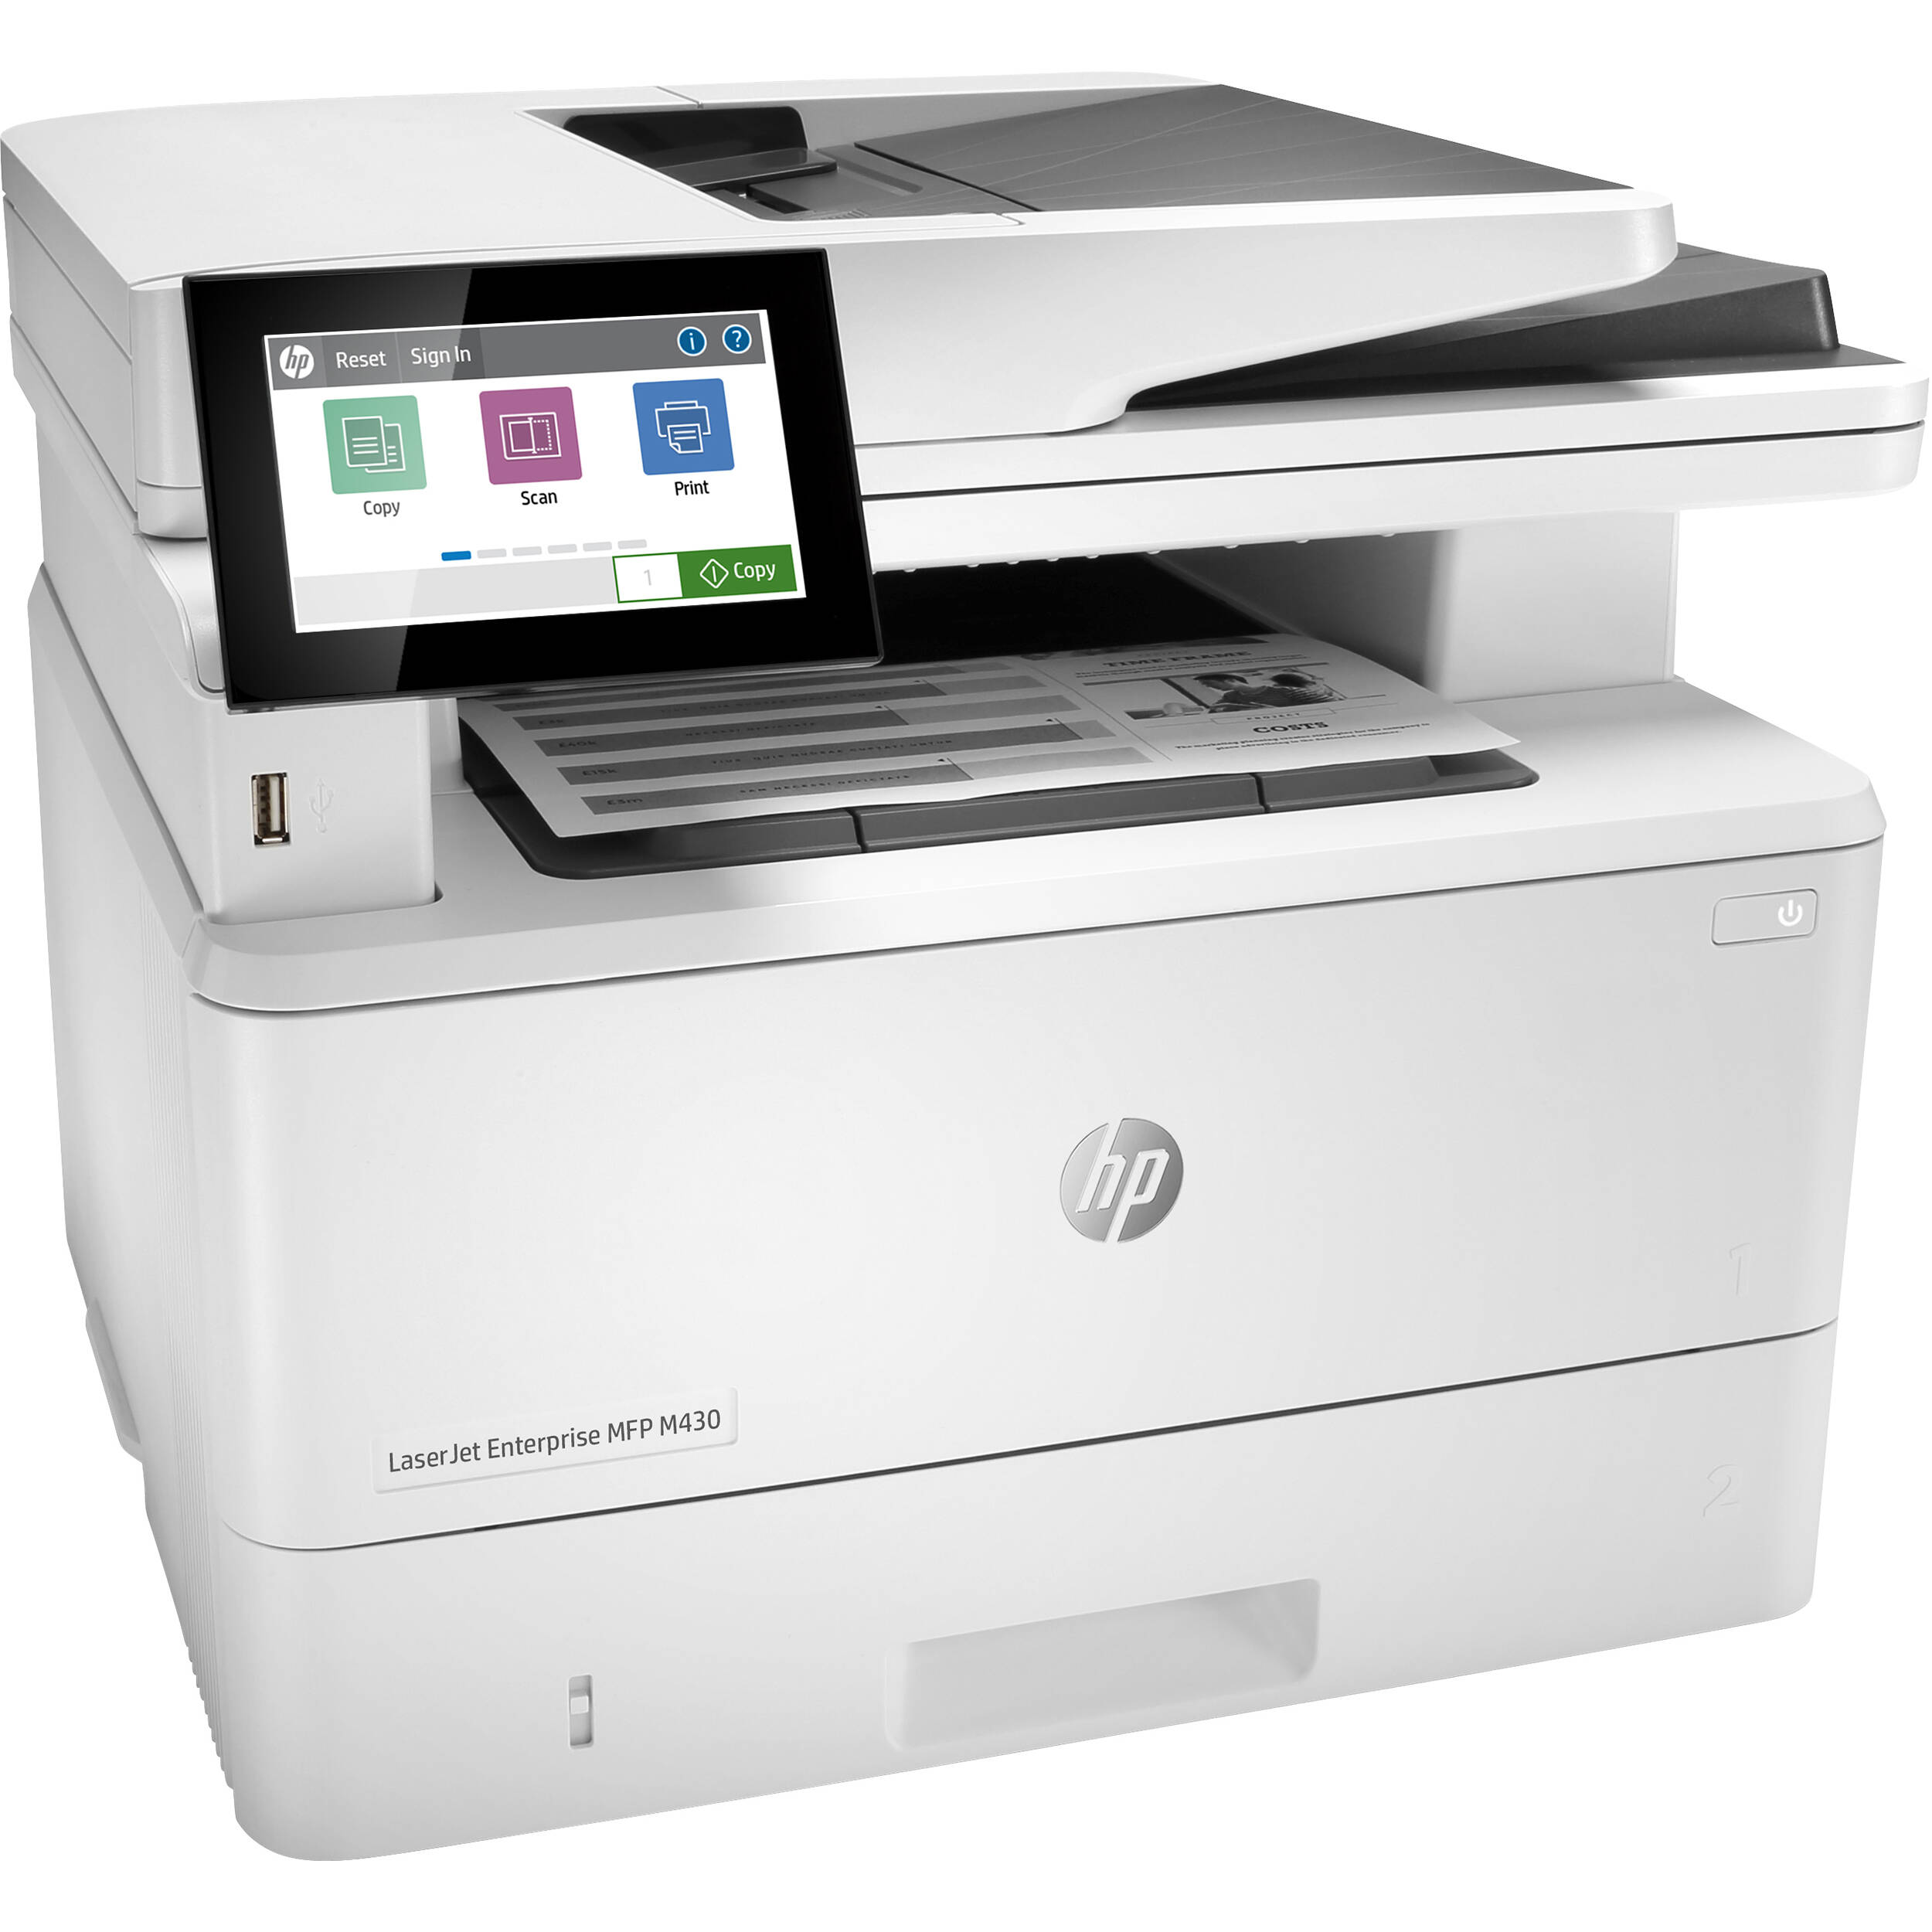 HP LaserJet Enterprise MFP M430f Mono Laser Printer, Demo (3PZ55A)